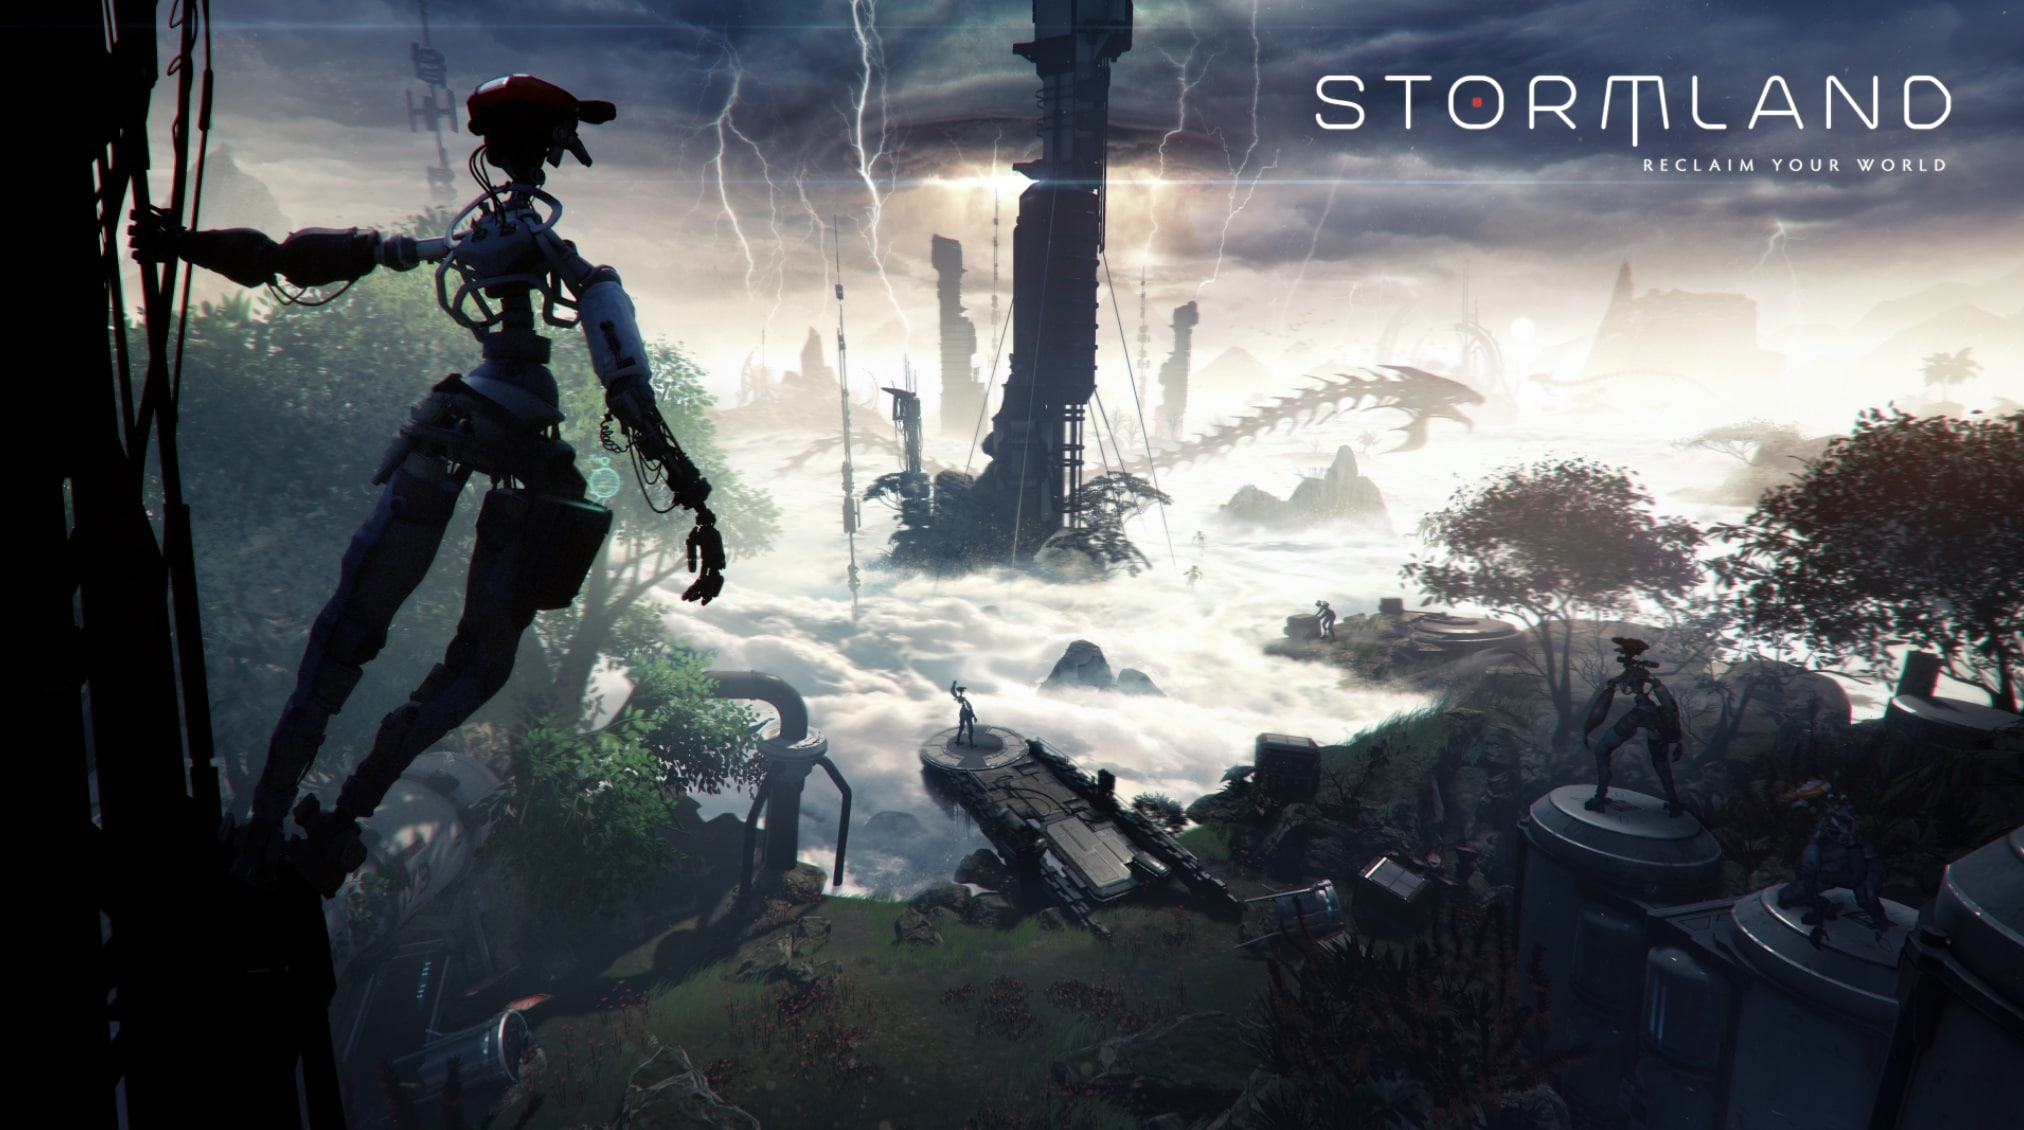 stormland title featured image